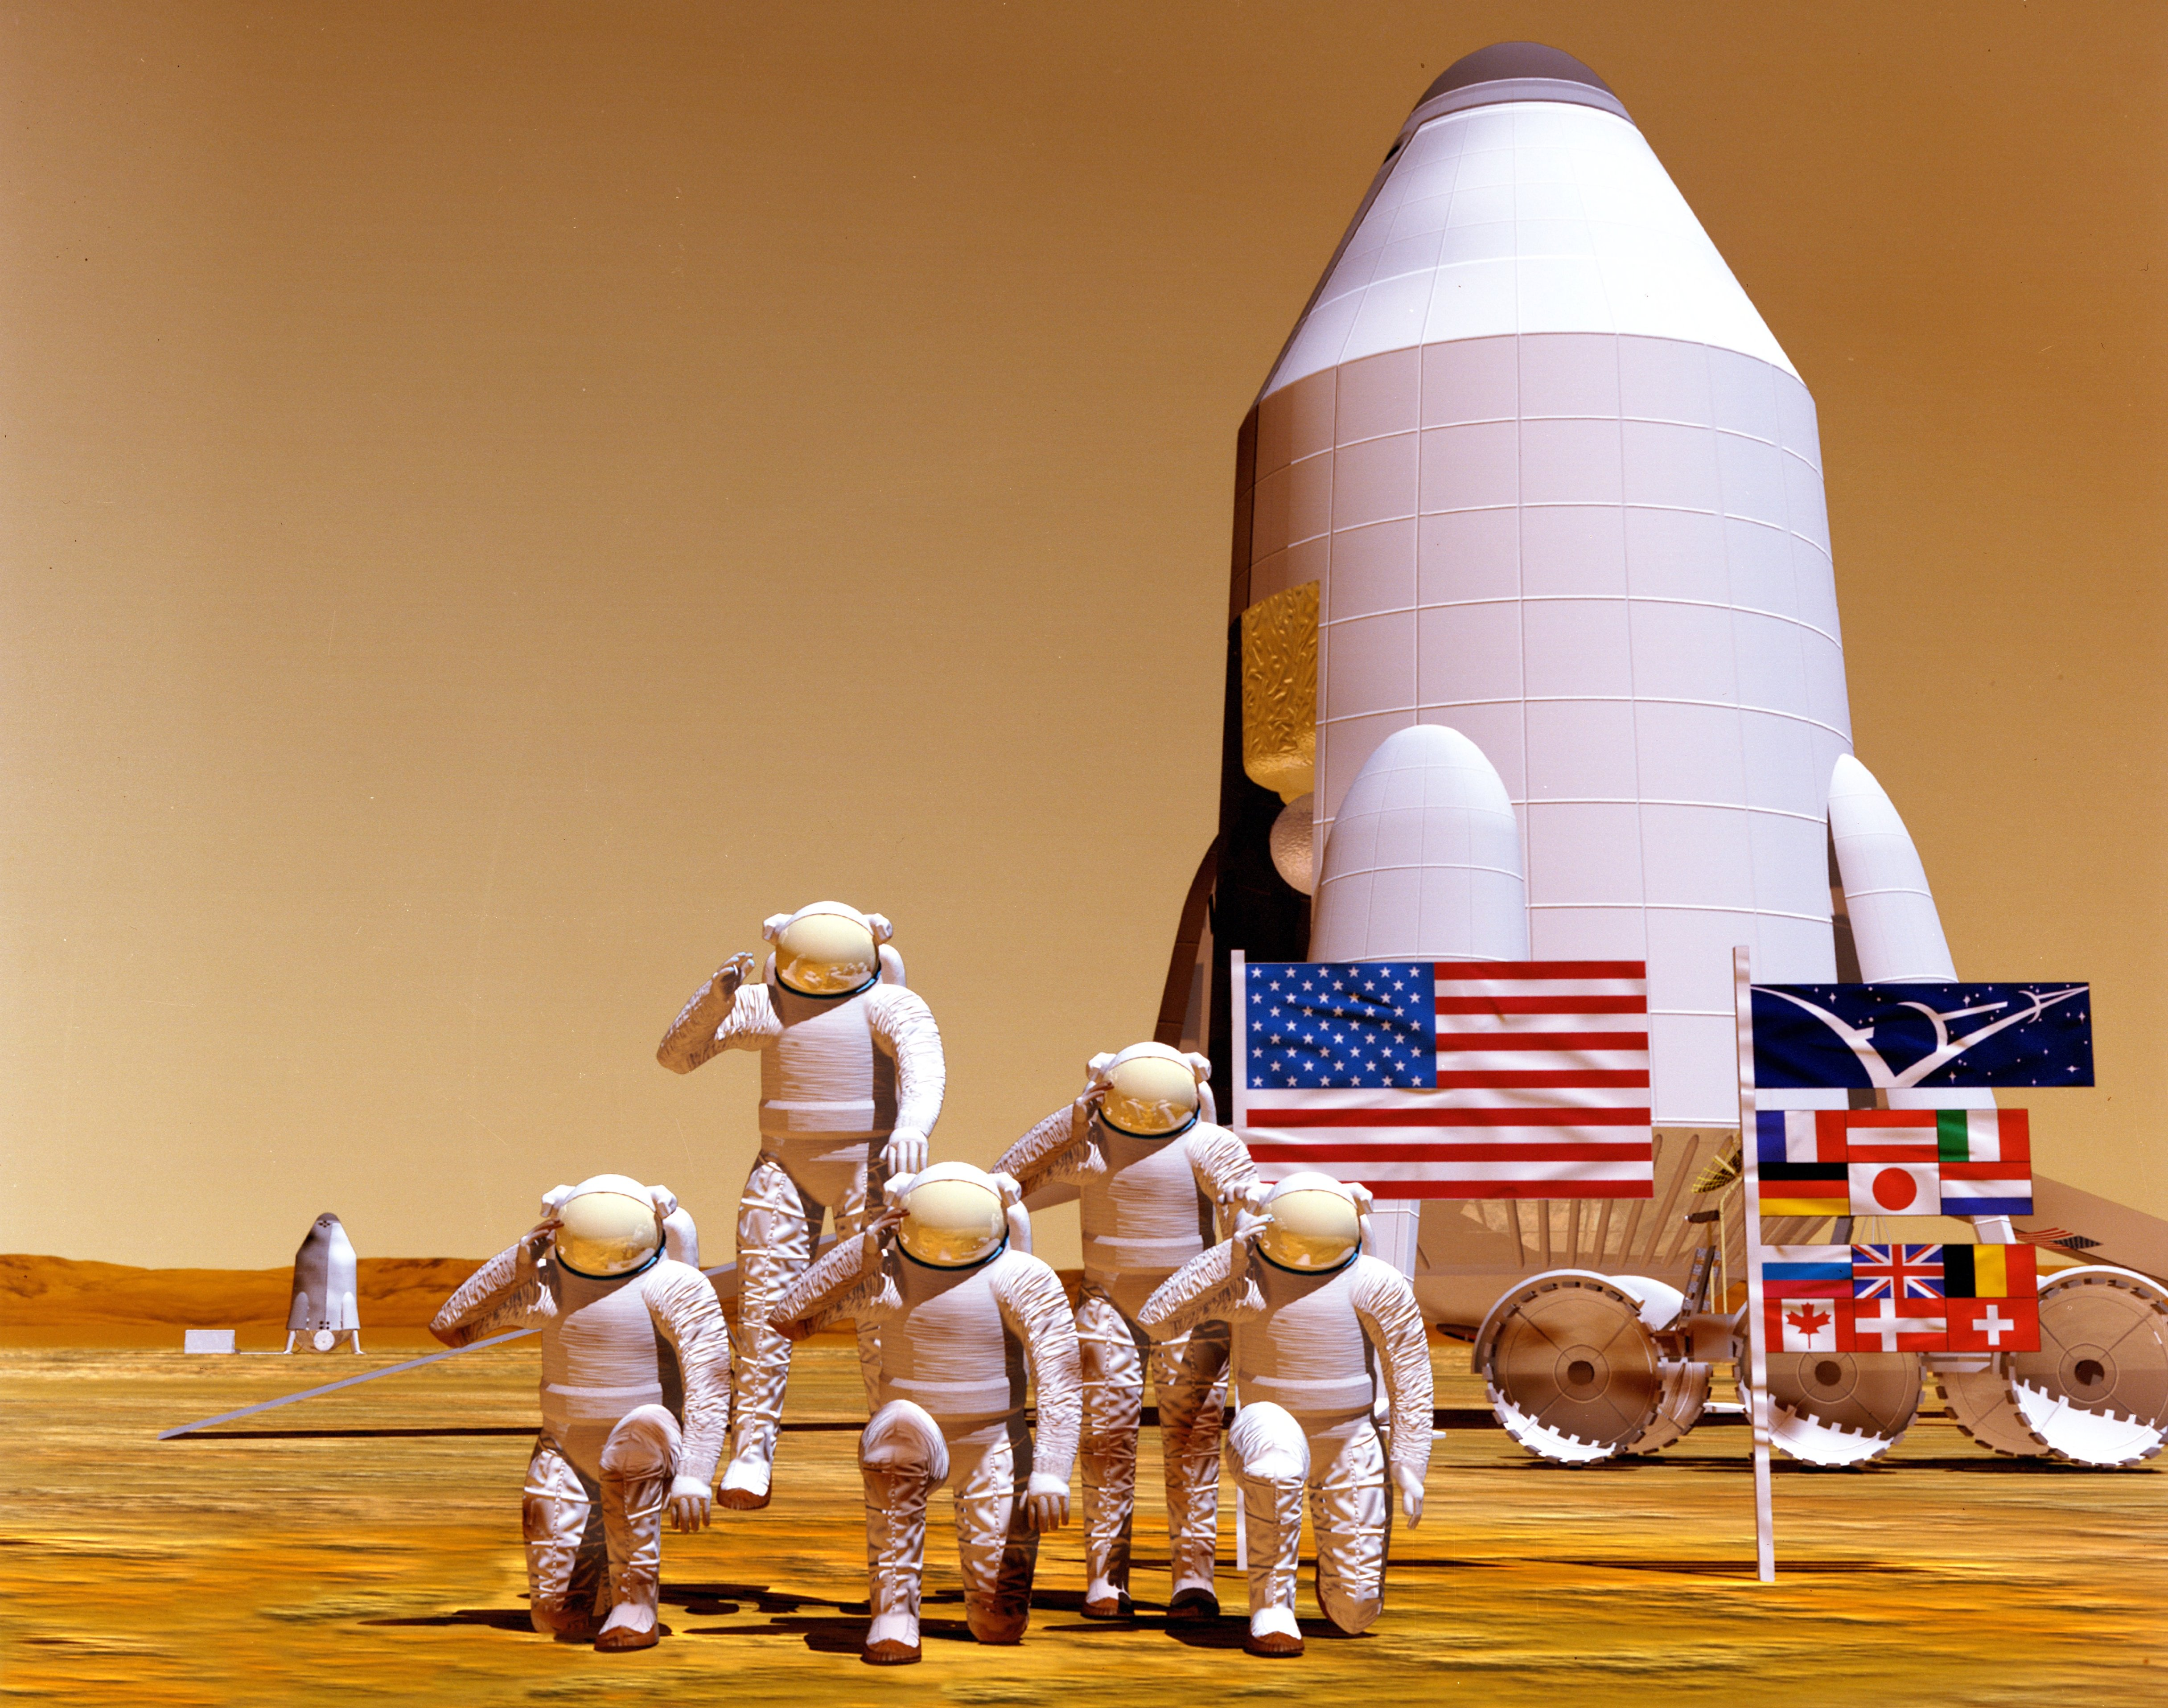 first manned mission to mars - photo #29